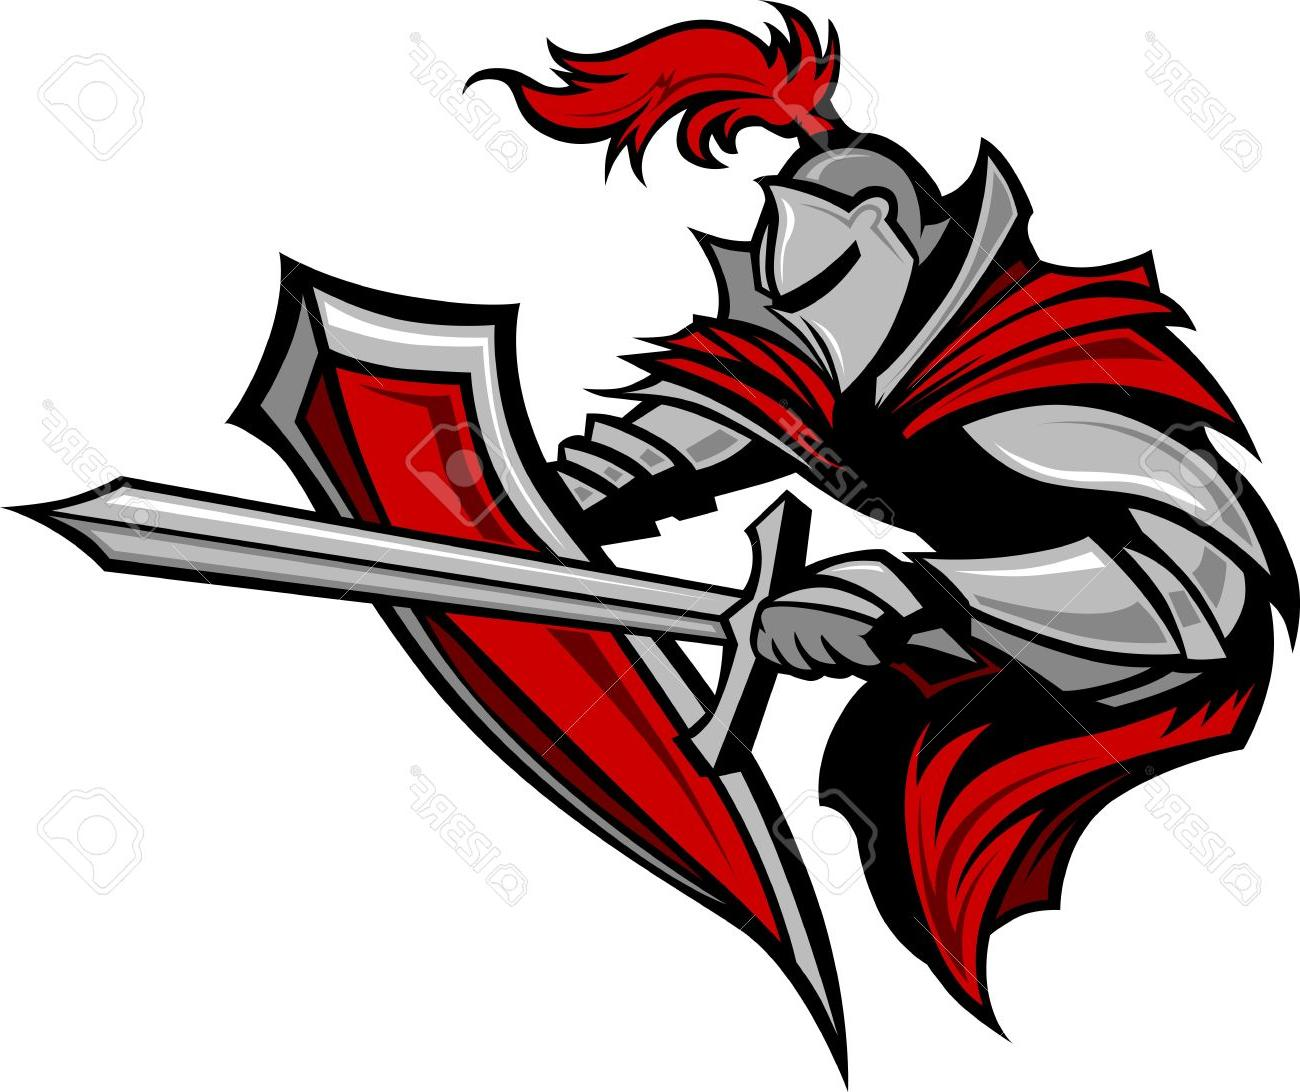 1300x1092 Unique Knight Vector Cdr Free Vector Art, Images, Graphics Amp Clipart